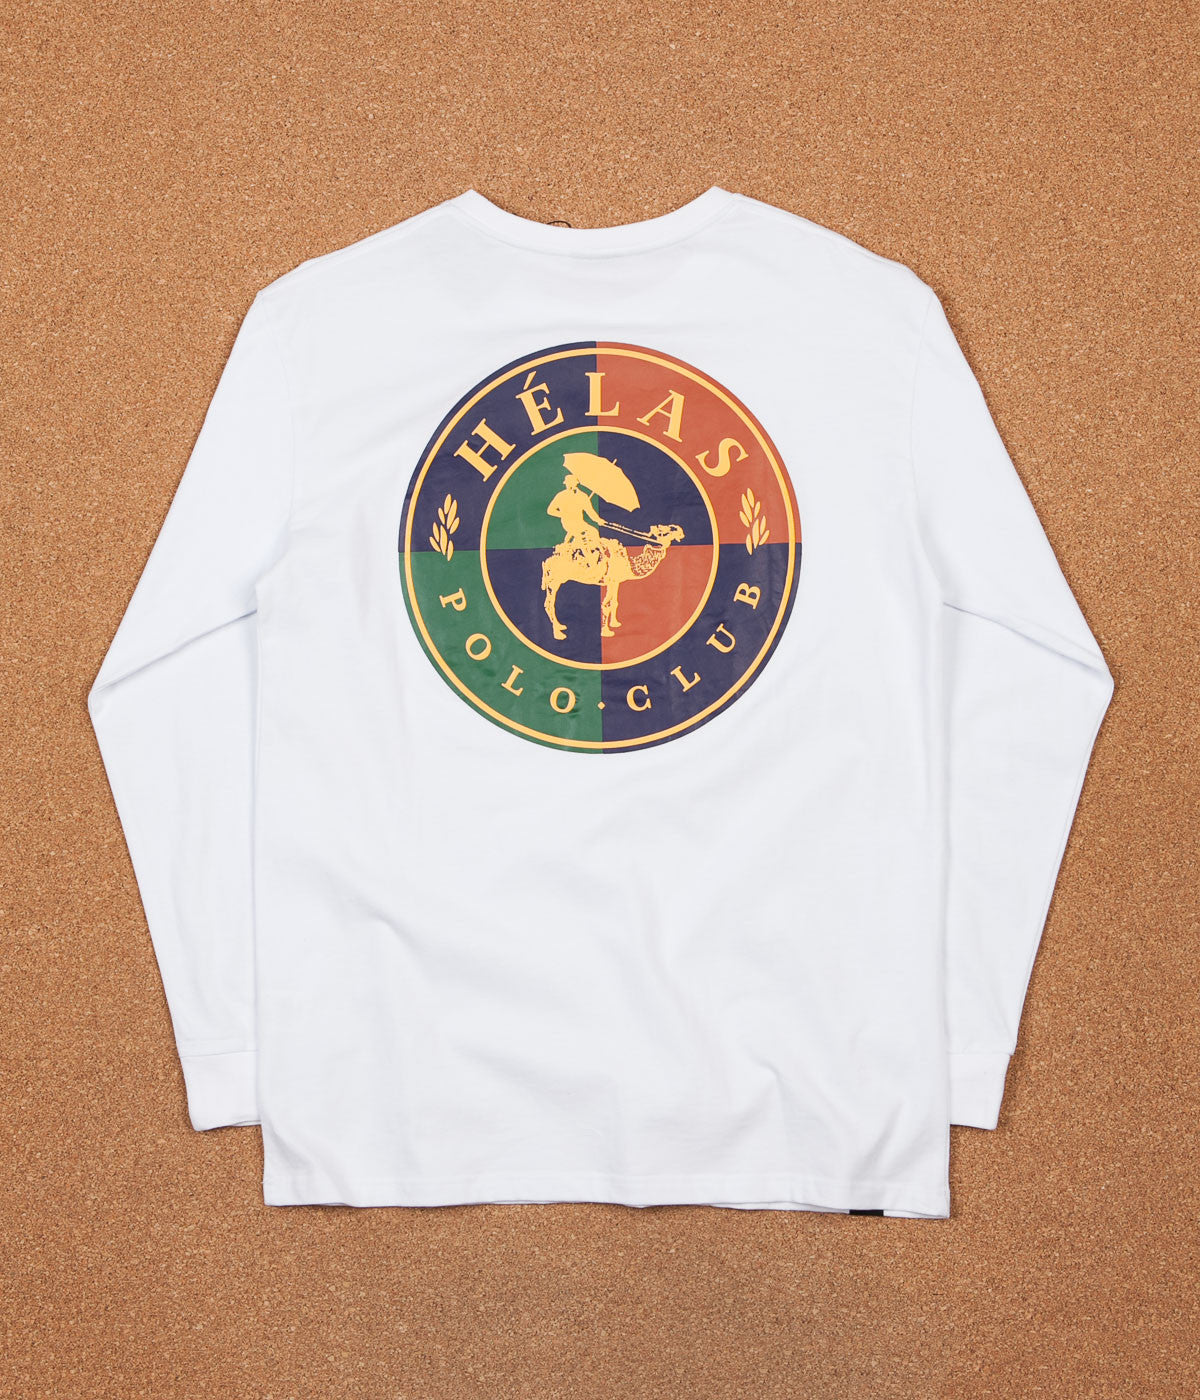 Helas Polo Club Long Sleeve T-Shirt - White